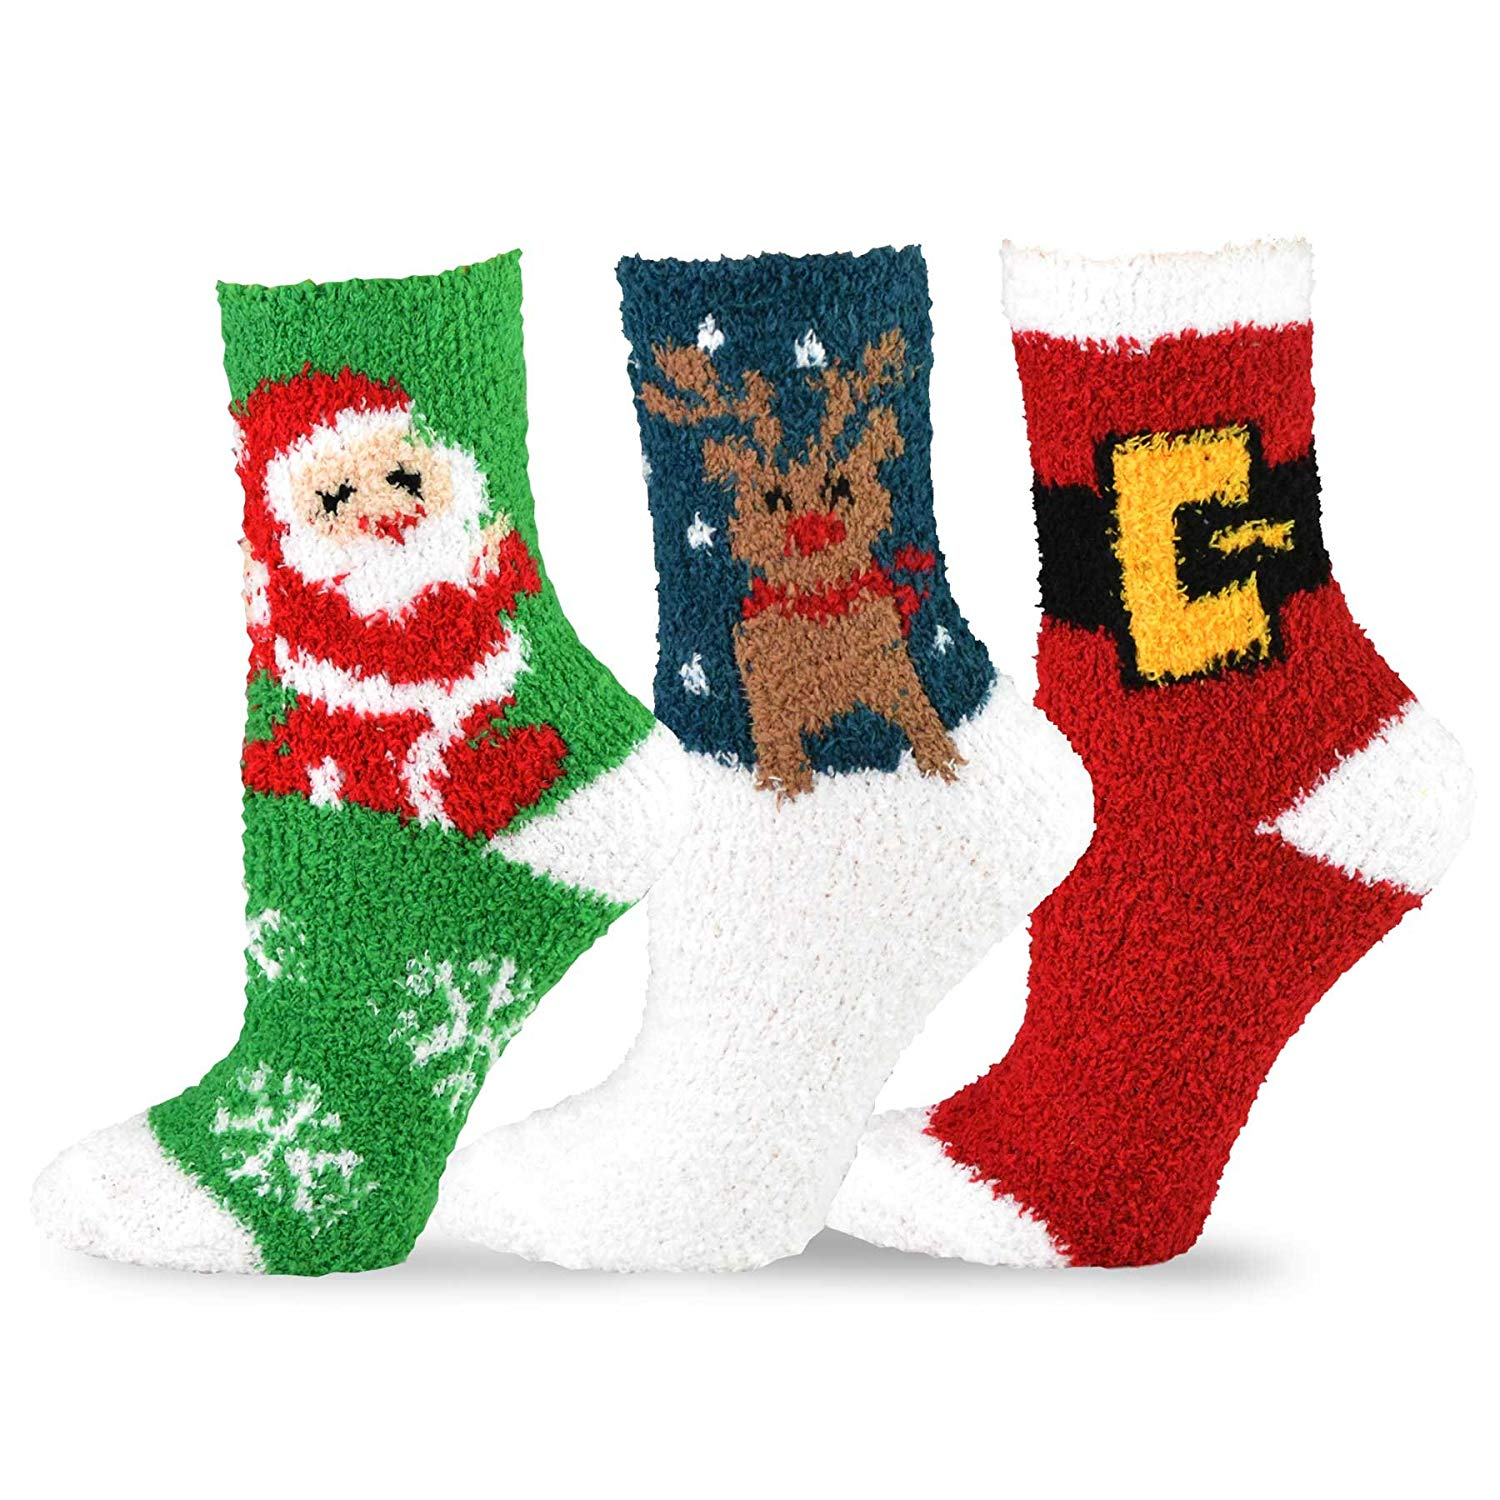 d7b670ace0db Cheap Holiday Socks For Men, find Holiday Socks For Men deals on ...